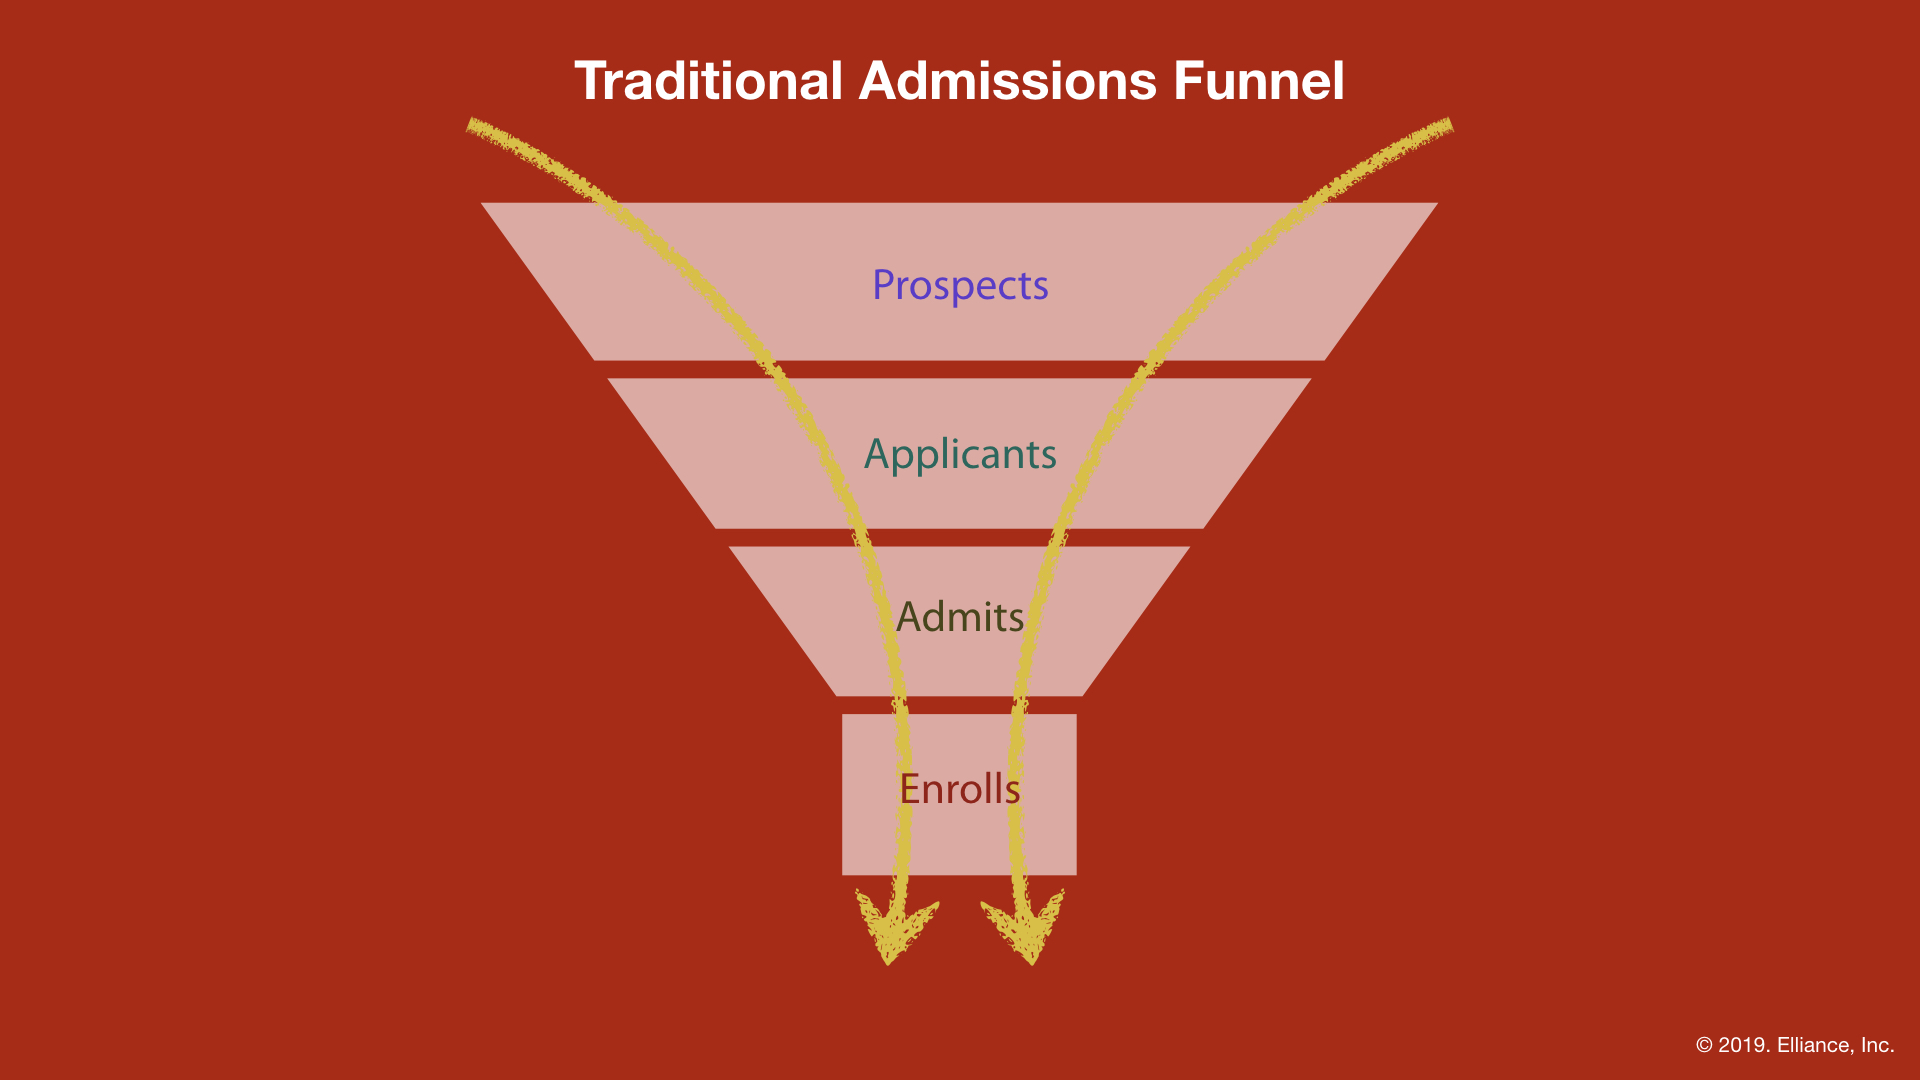 Traditional Admissions Funnel